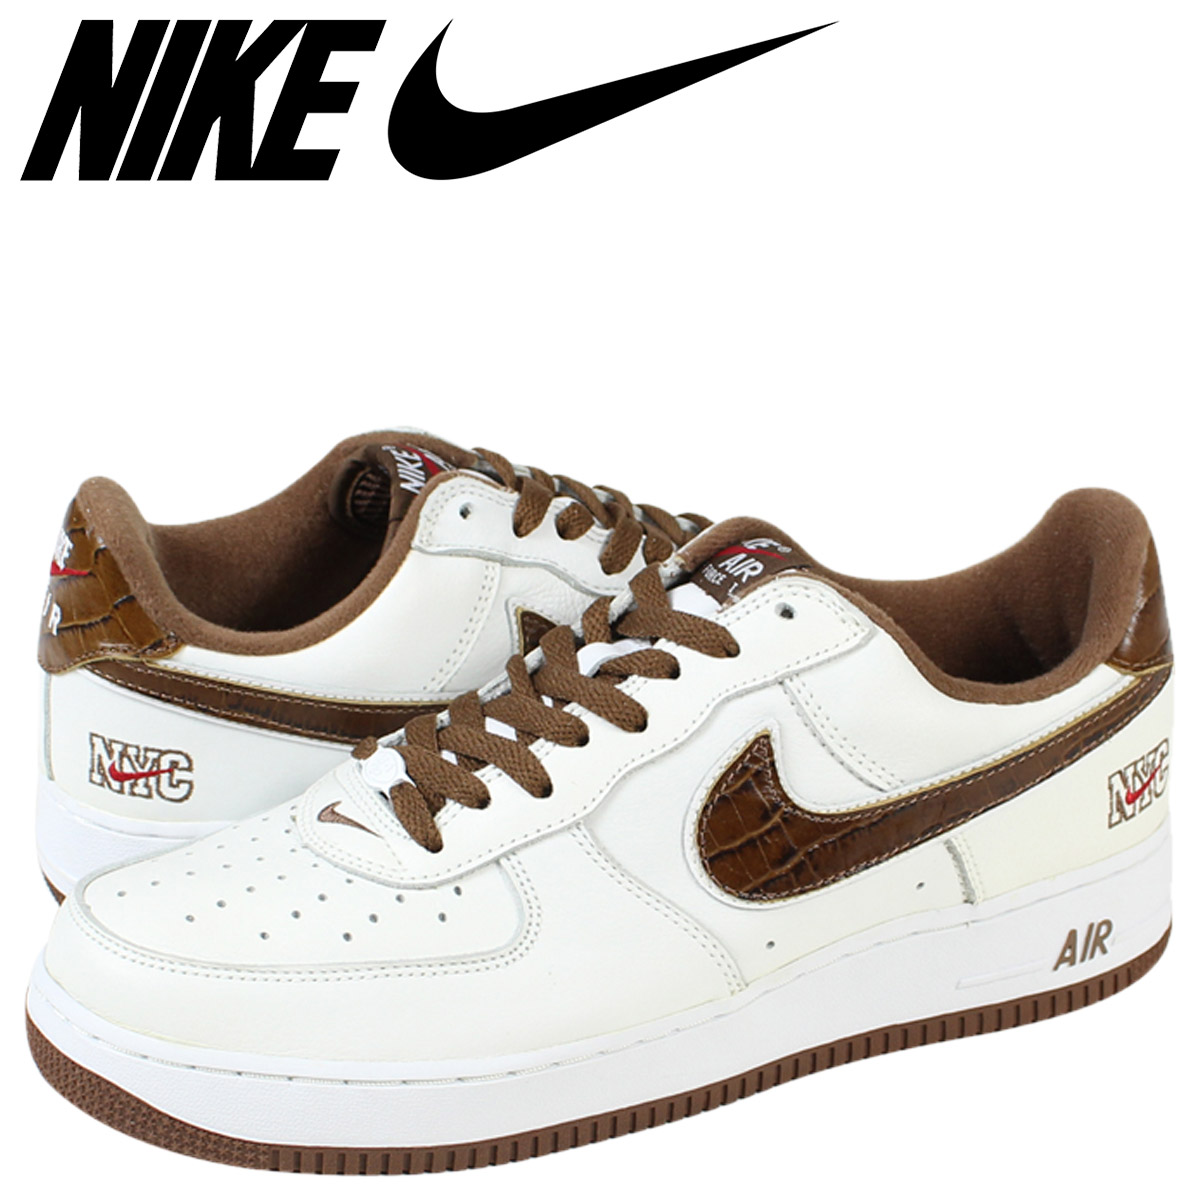 Nyc Nike Sneakers 509 306 121 Low Air 1 White Men Force 29HeWDEIY